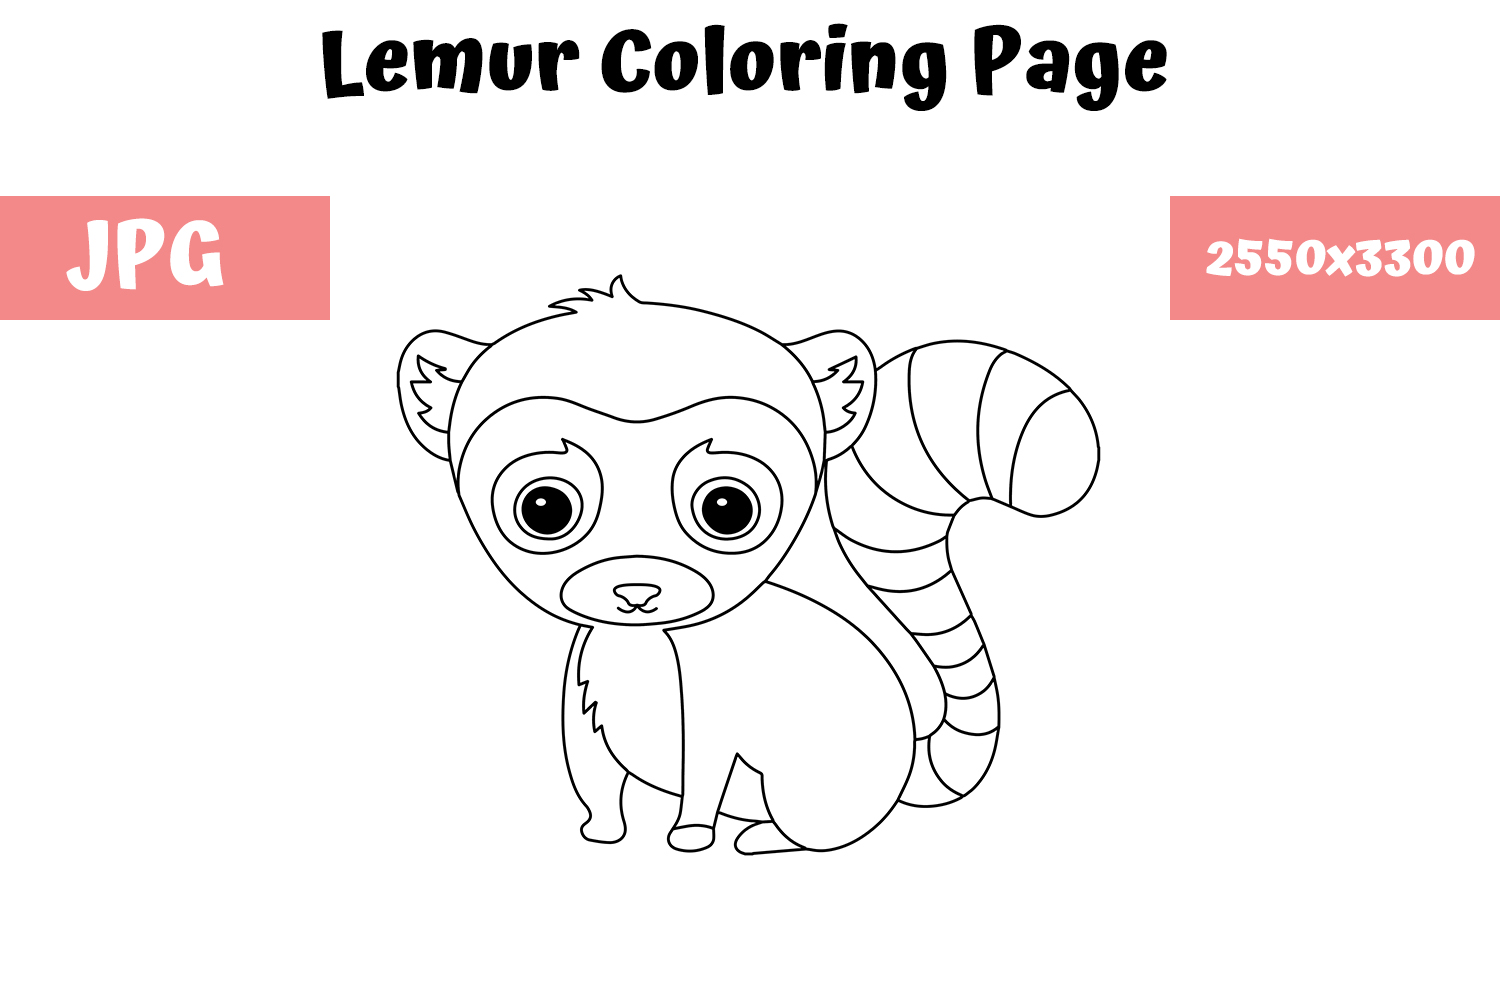 Coloring Page For Kids Lemur Graphic By Mybeautifulfiles Creative Fabrica